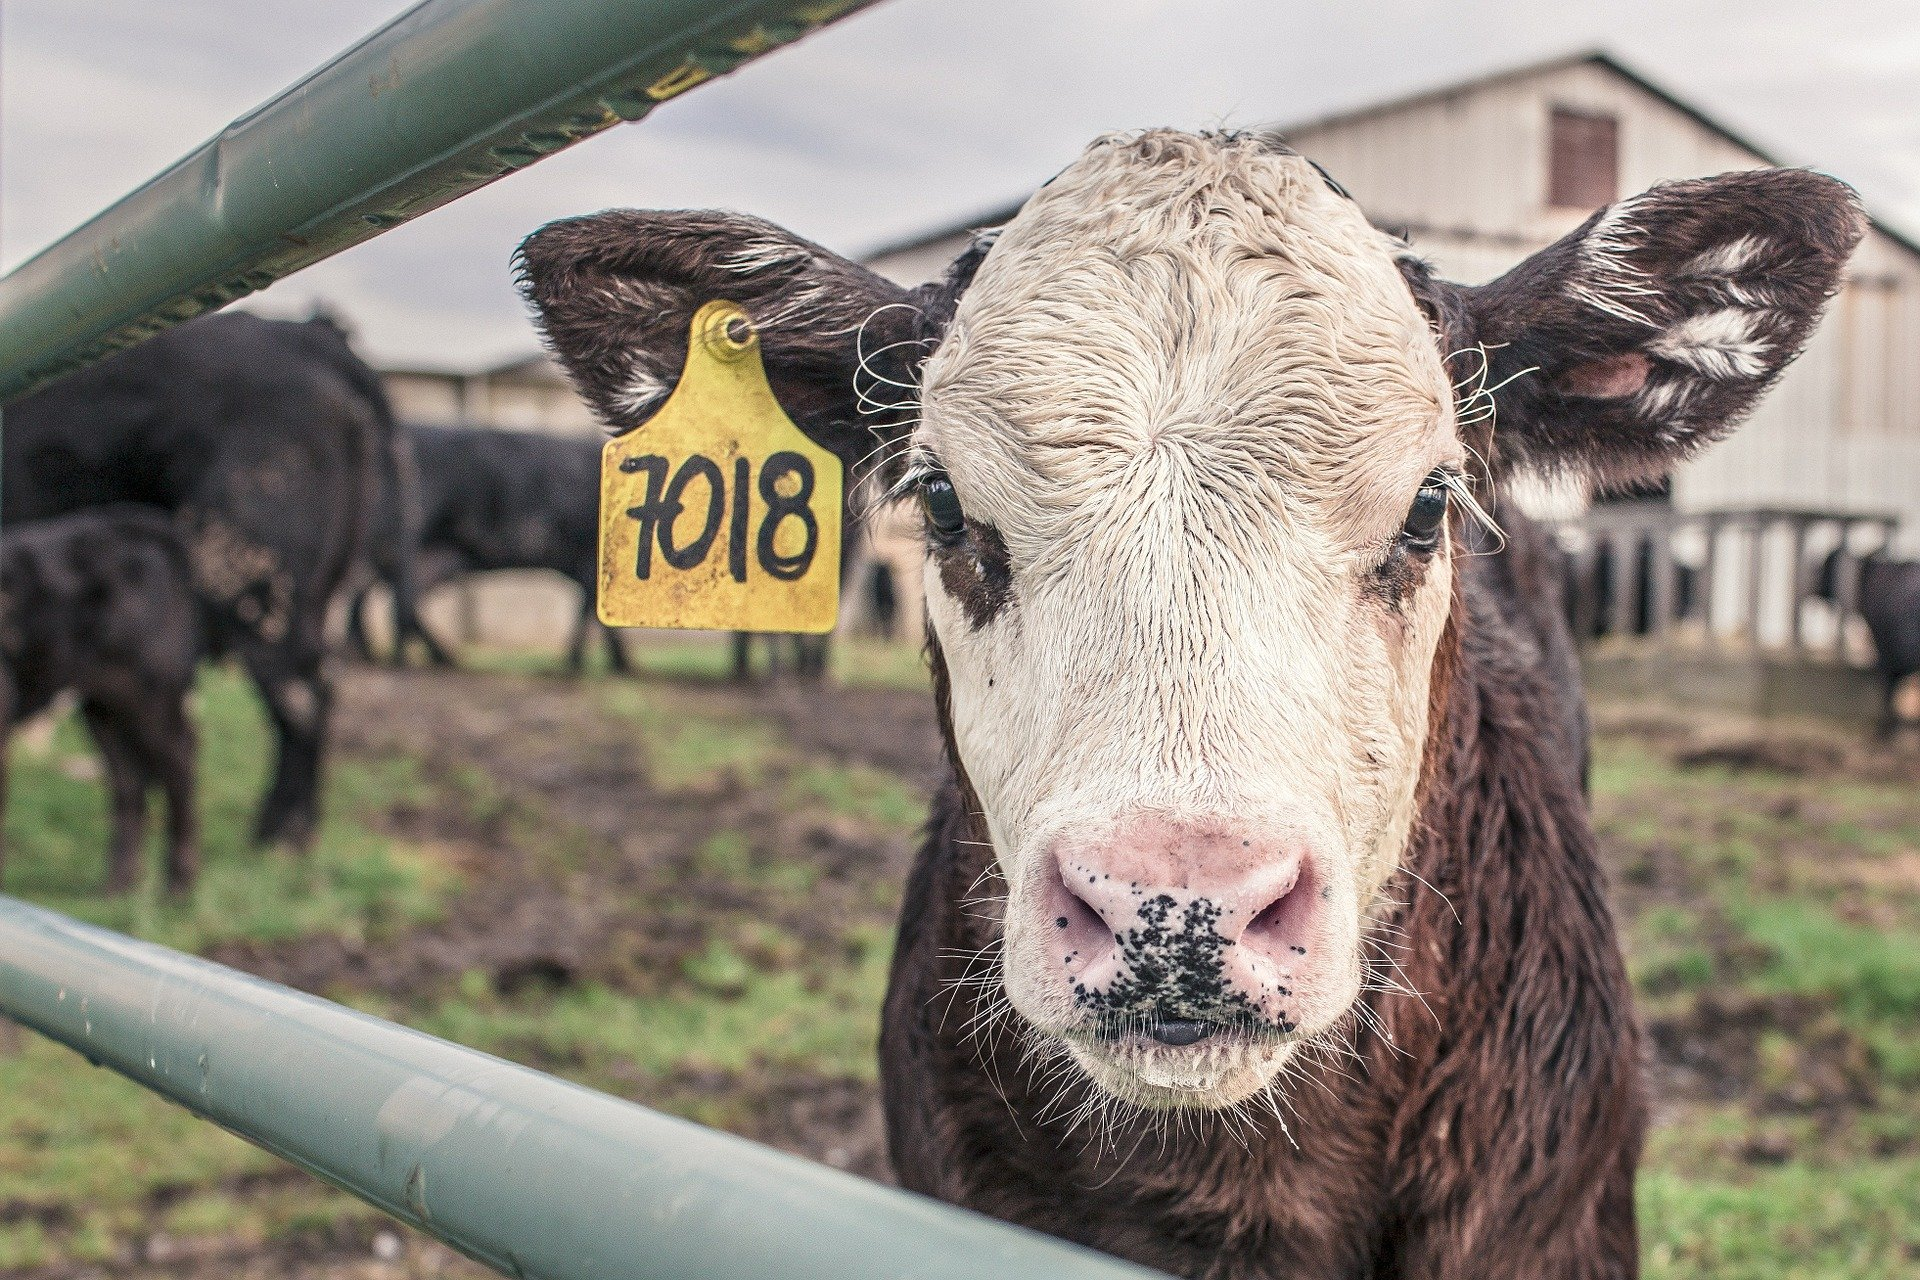 Environmental dissemination of beef cattle agrochemicals